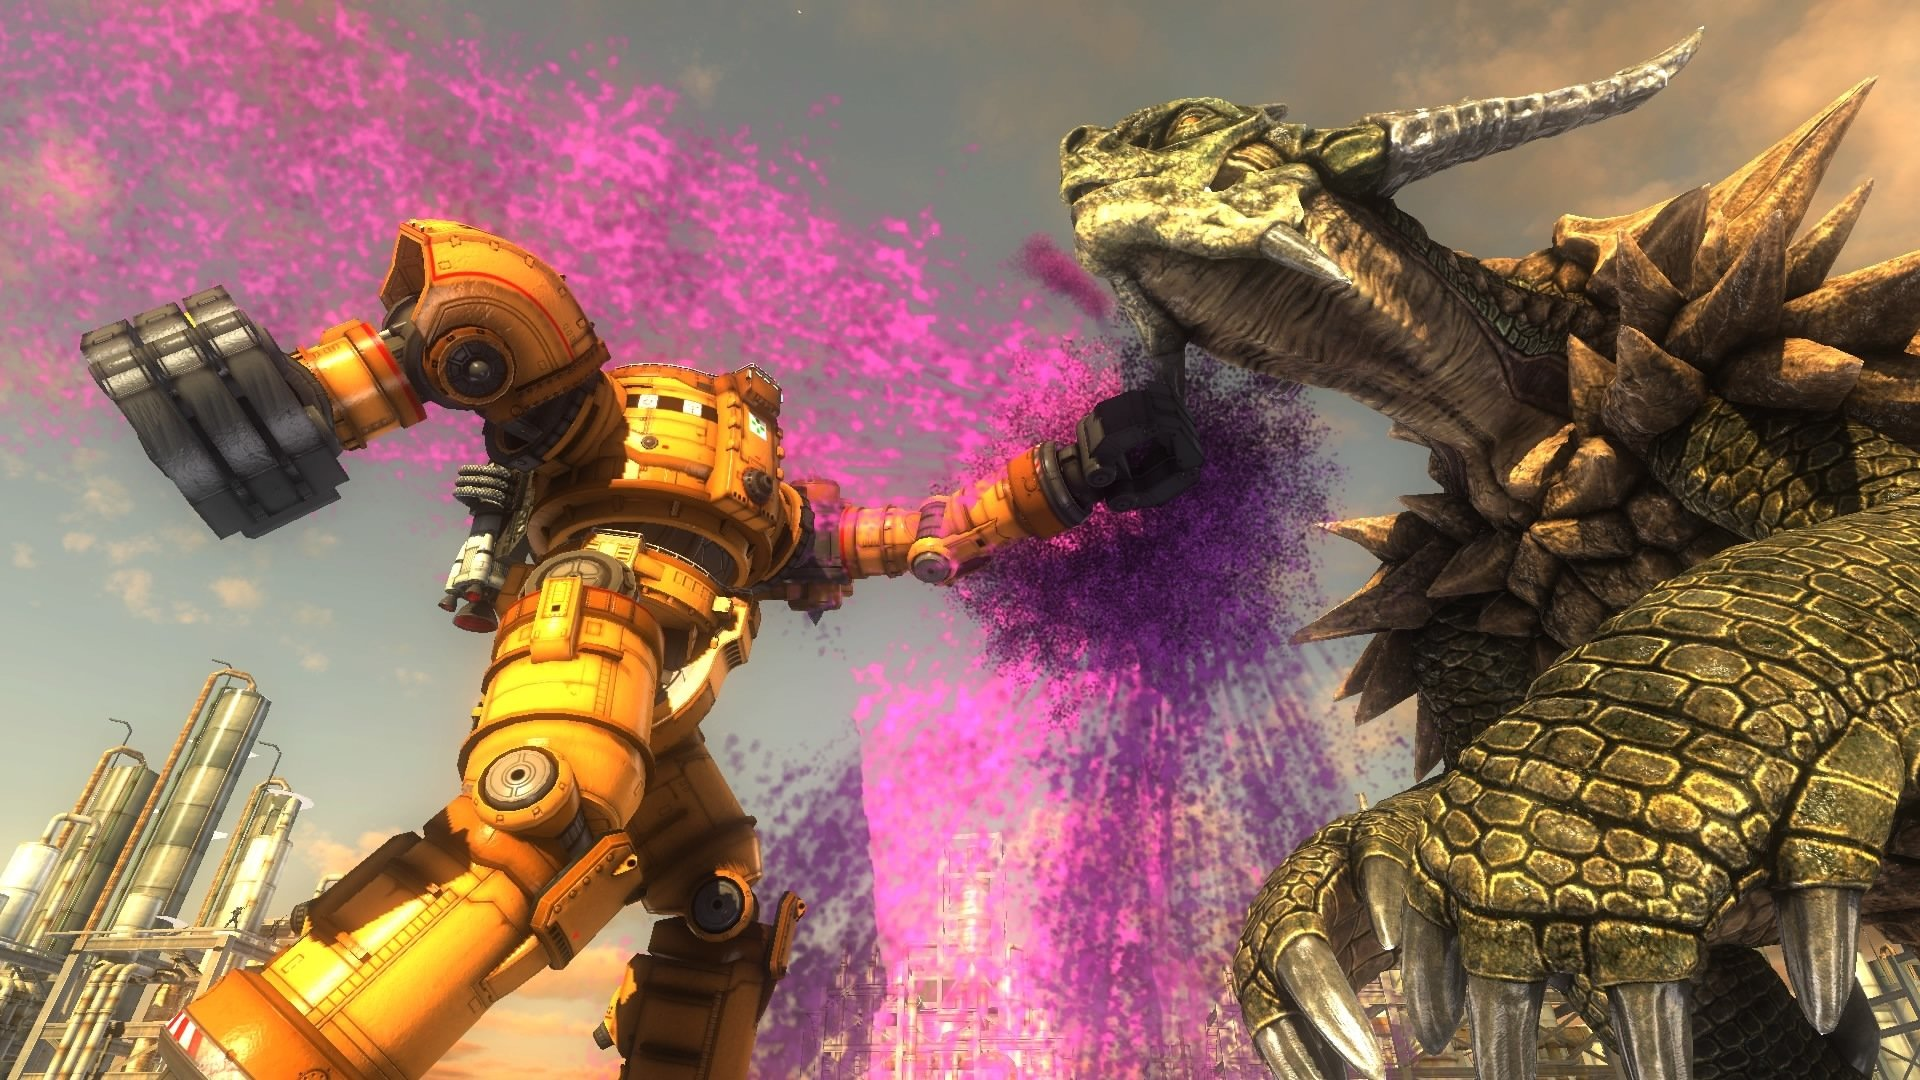 edf 5 mech fighting a dragon